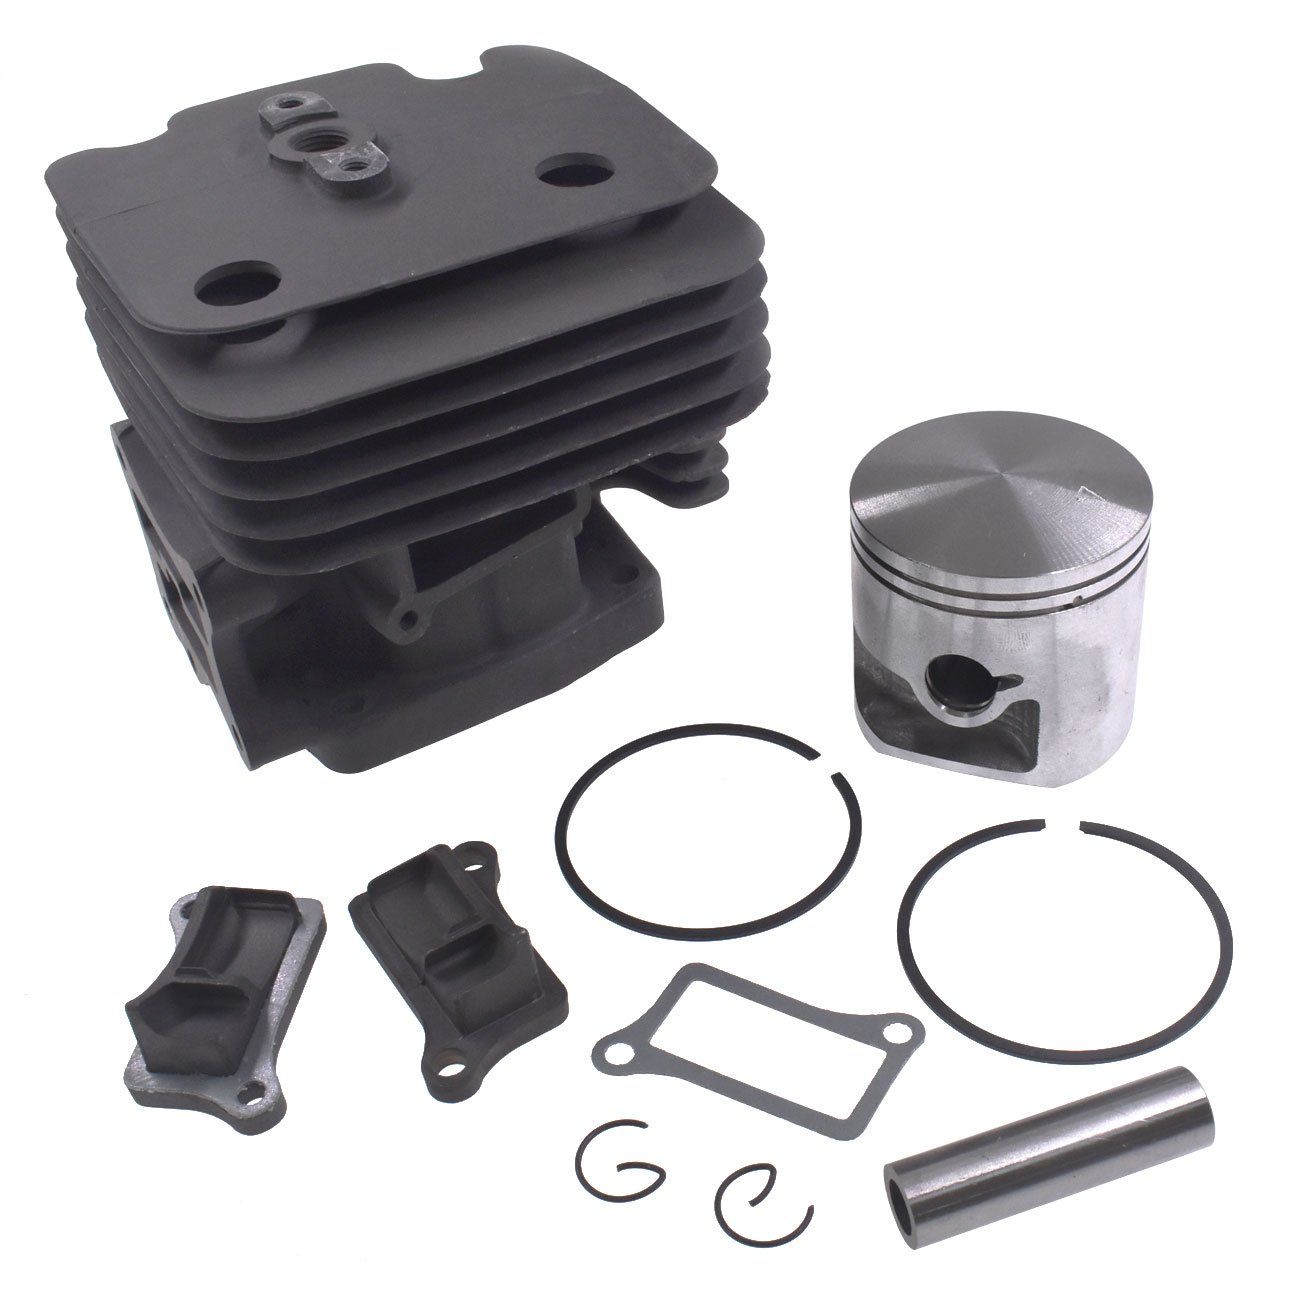 JRL for Genuine RedMax 577424001 Cylinder Fits EBZ8500 EBZ8500RH OEM by JRL